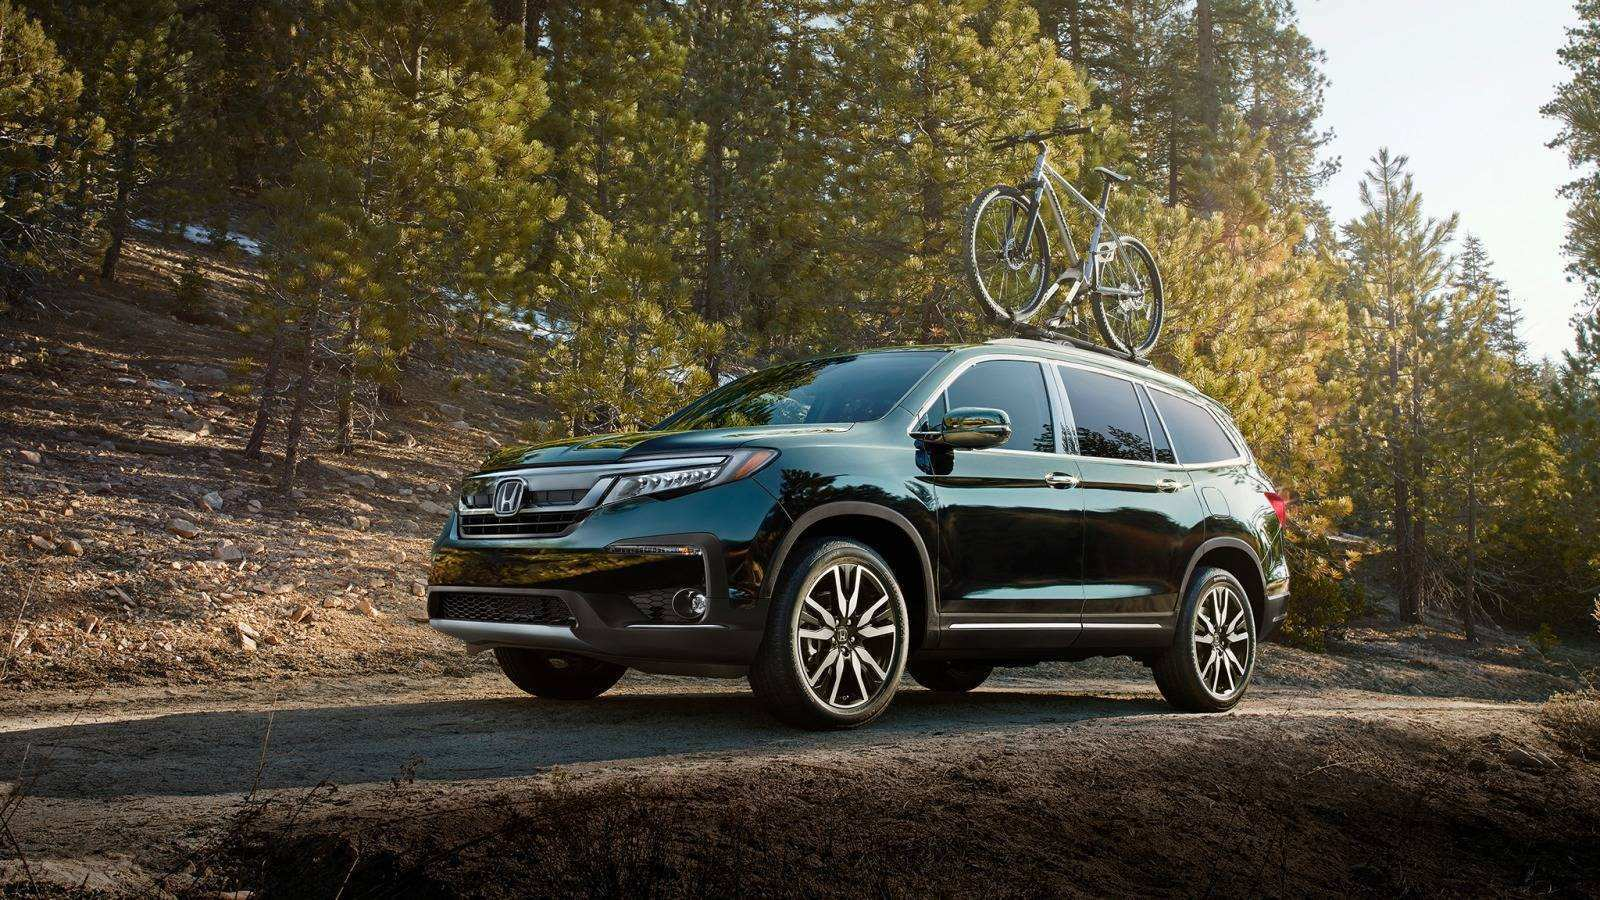 26 All New The 2018 Vs 2019 Honda Pilot Price And Review Review for The 2018 Vs 2019 Honda Pilot Price And Review